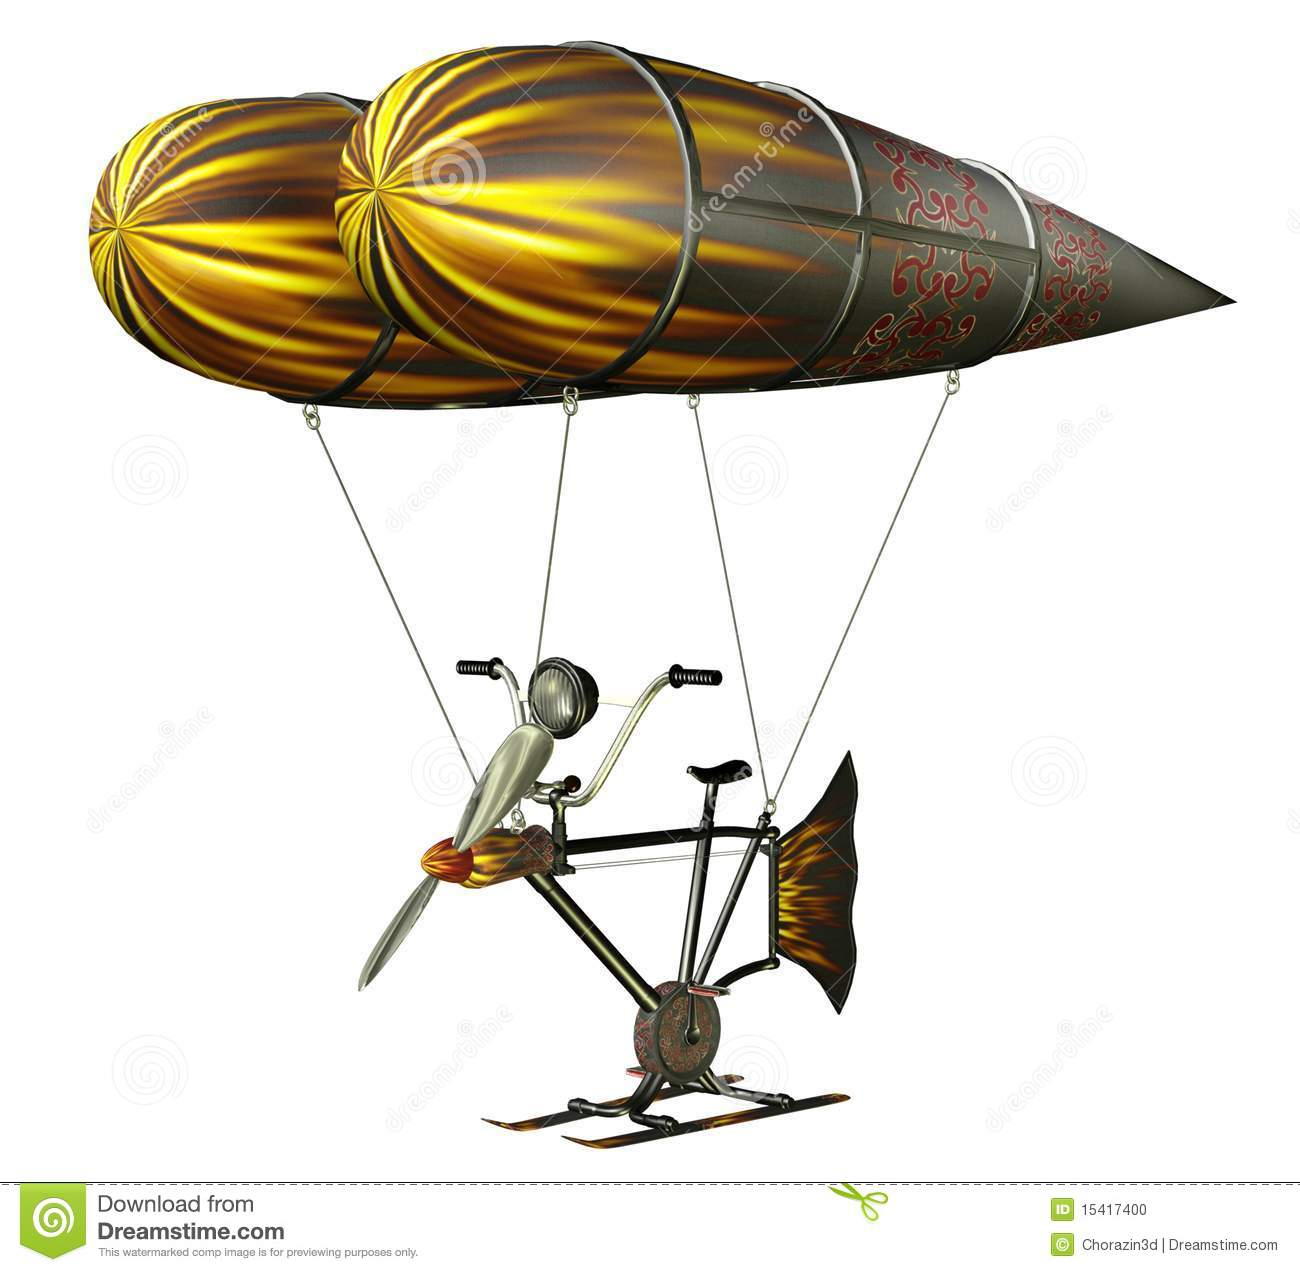 Fantasy Flying Machine Royalty Free Stock Image.